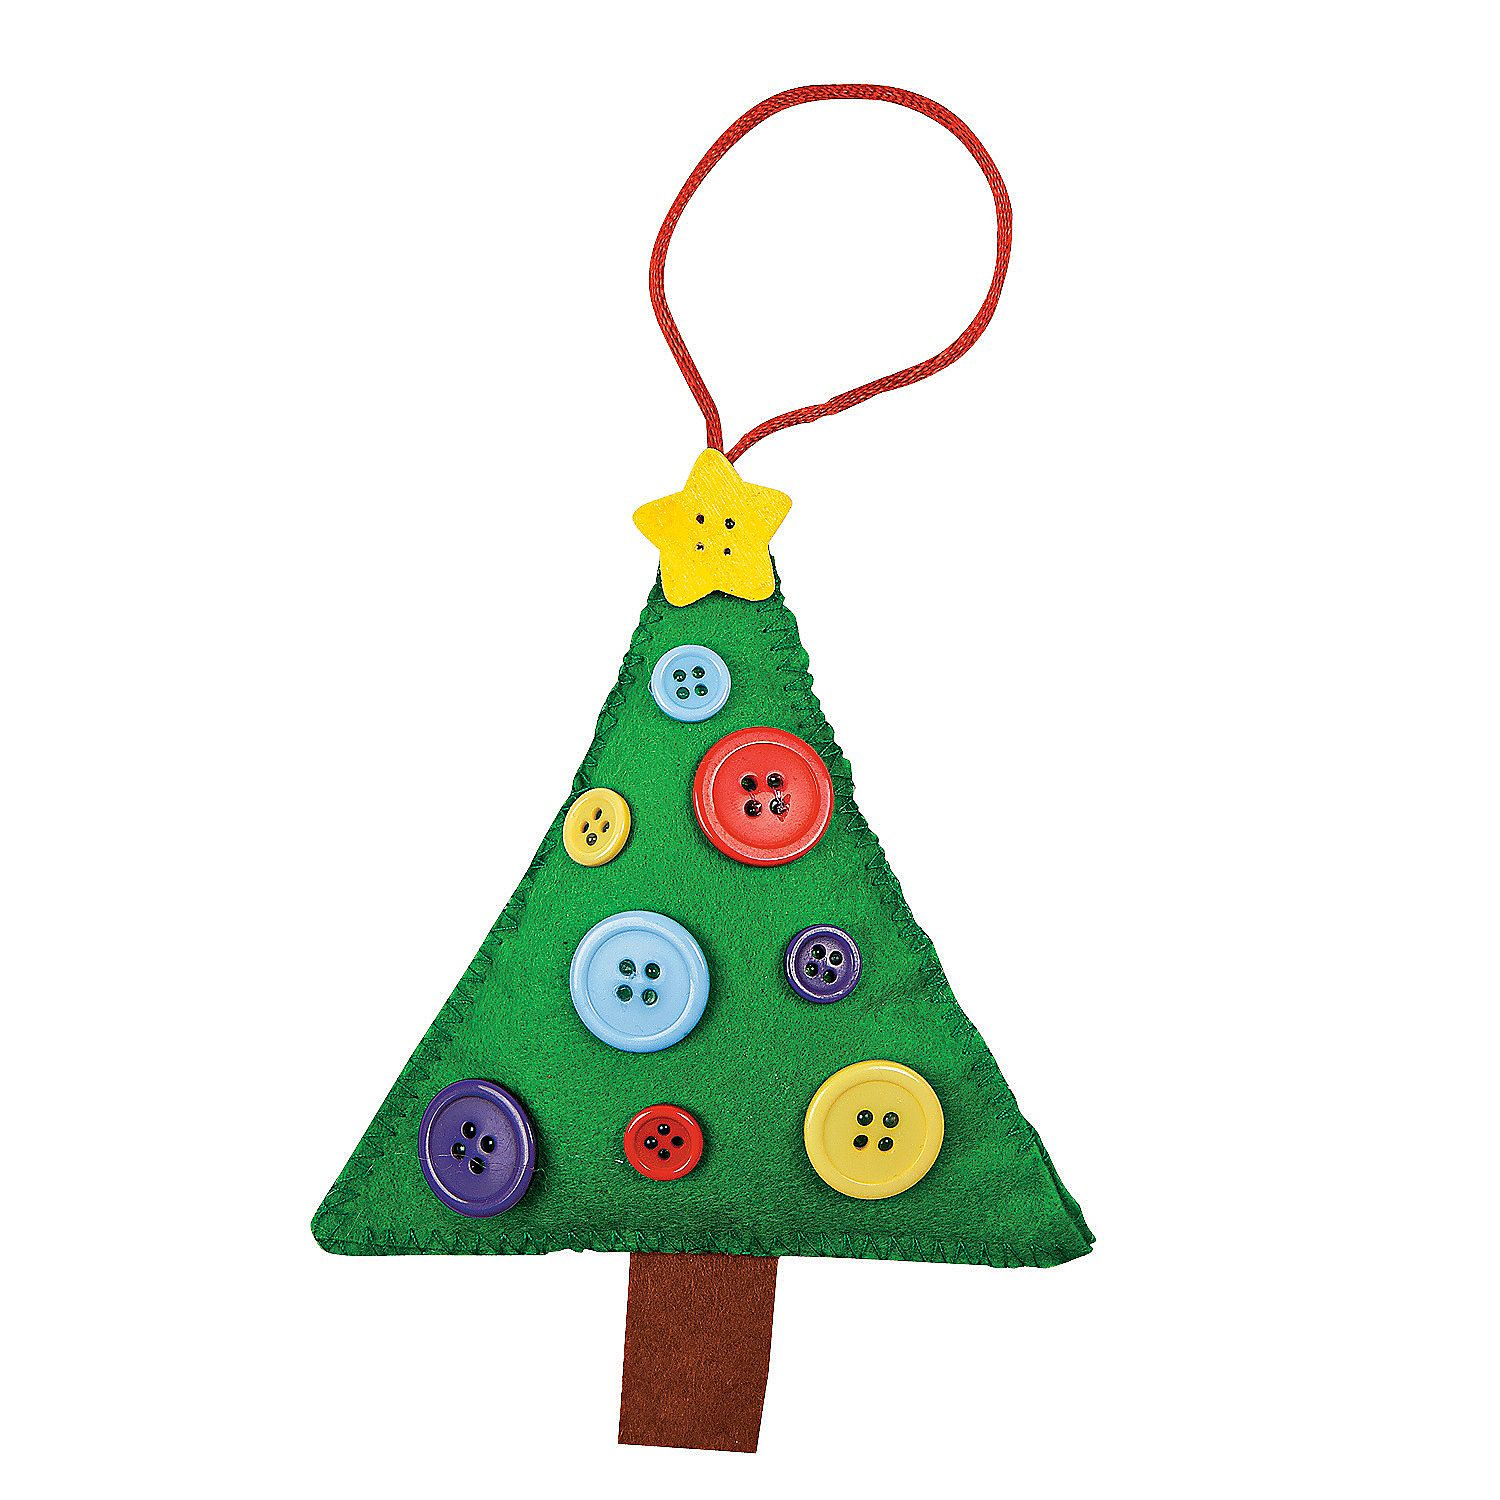 Button Christmas Tree Ornament Craft Kit Discontinued Christmas Tree Ornament Crafts Ornament Crafts Crafts